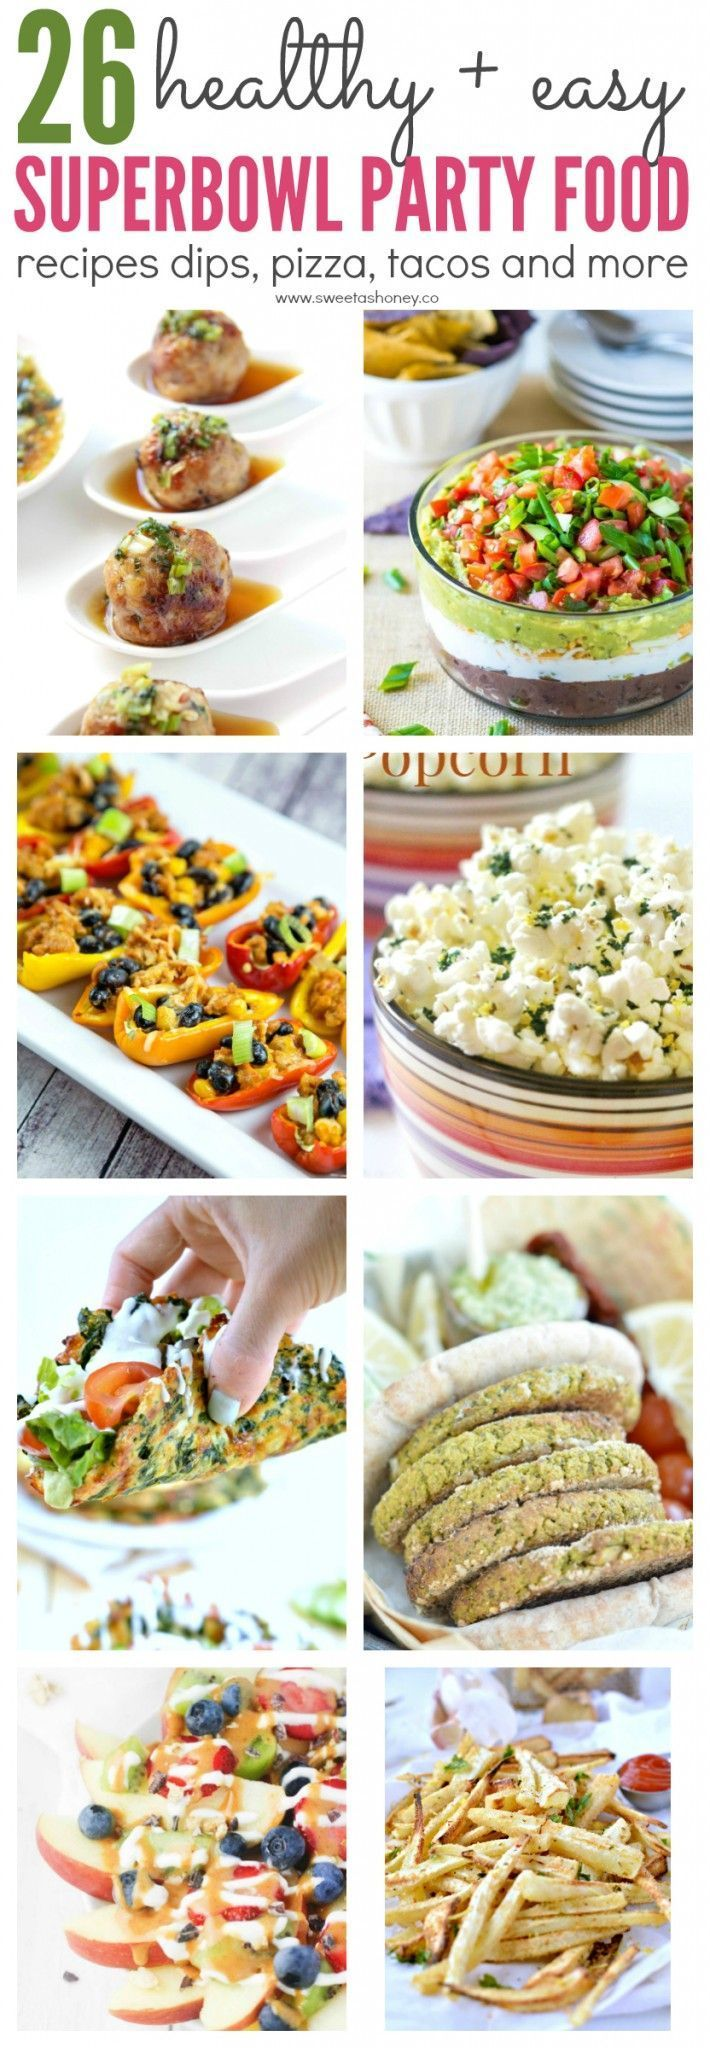 26 superbowl party food recipes easy and healthy superbowl food 26 superbowl party food recipes easy and healthy superbowl food ideas including appetizers desserts forumfinder Images